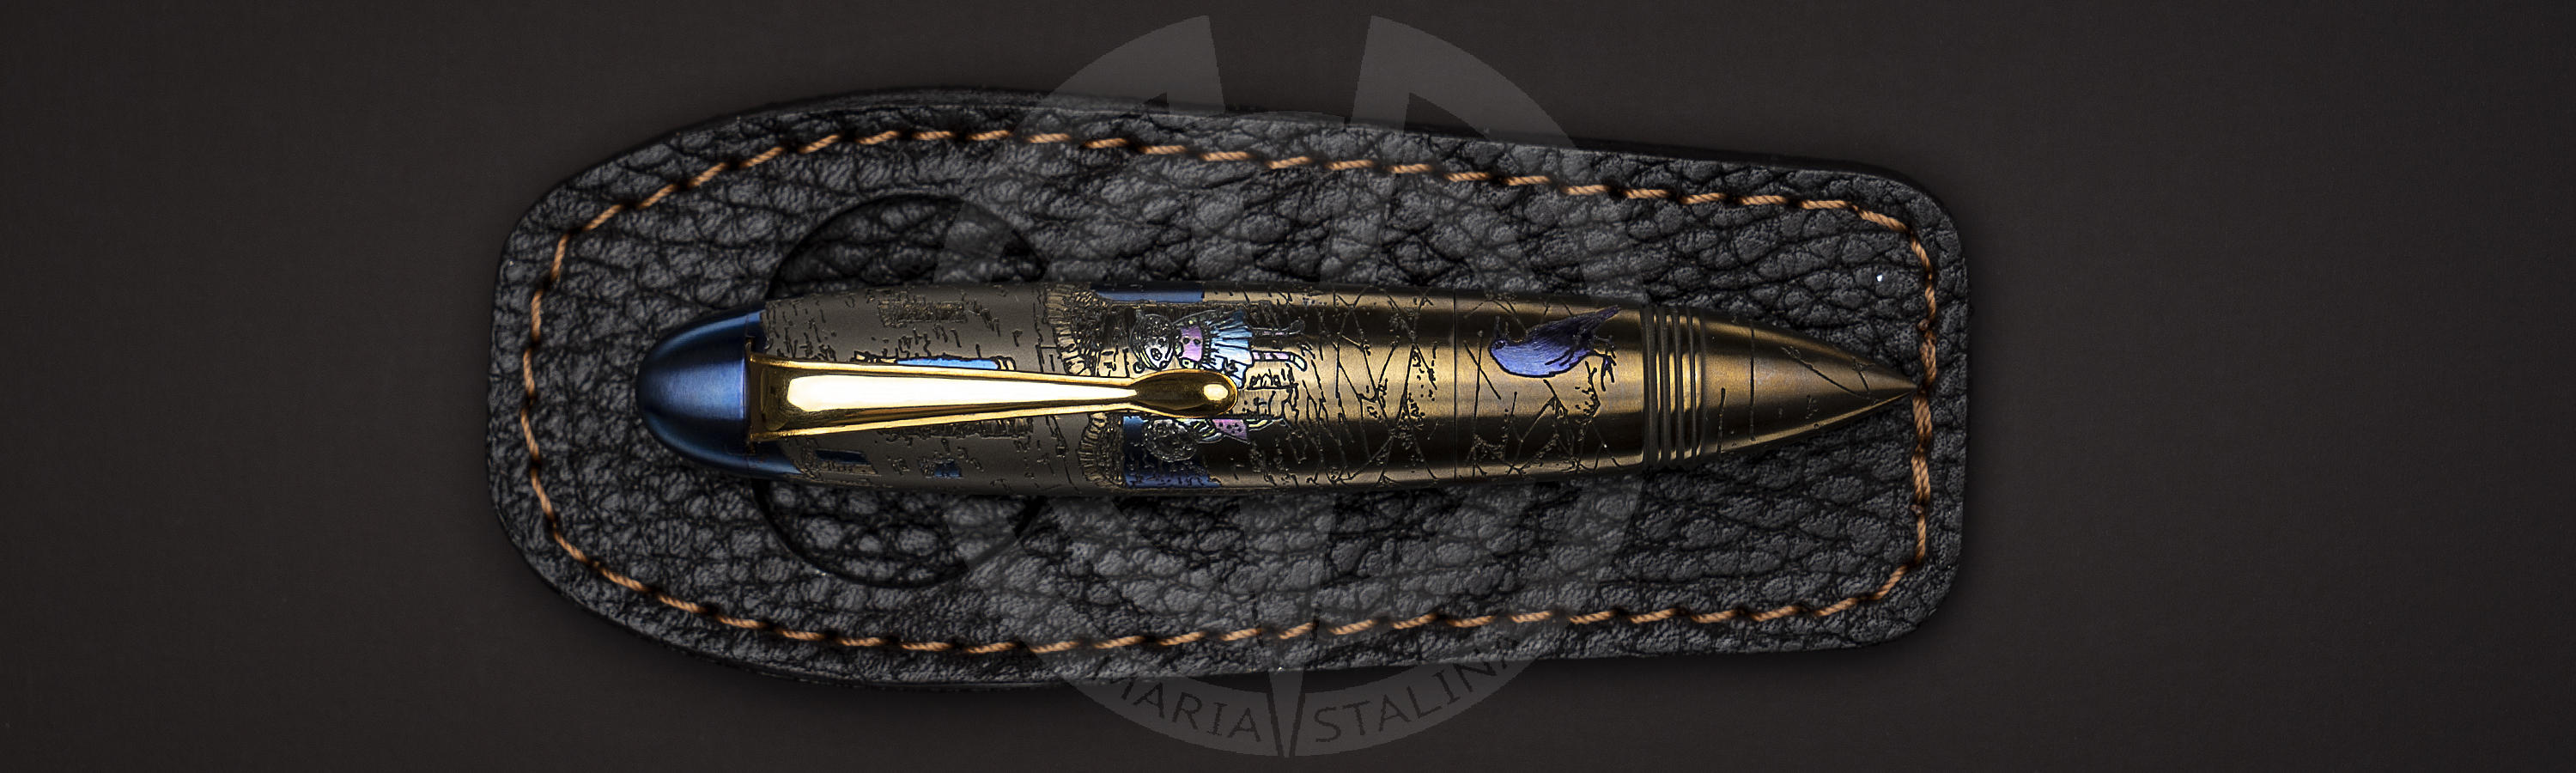 Zeppelin Teddy Death anodized tactical pen Streltsov P&A